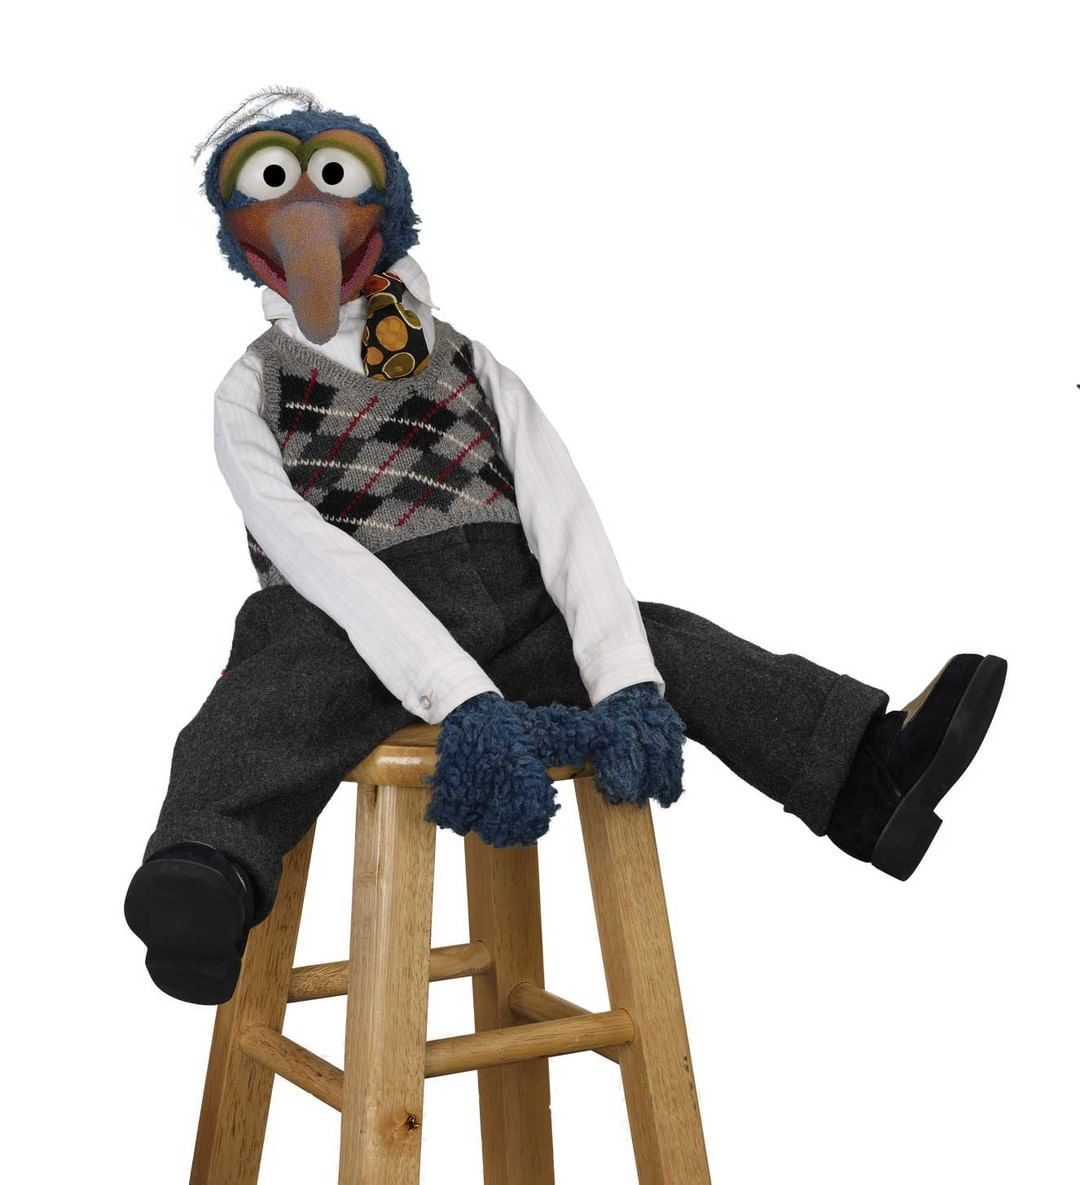 The Muppets Themuppets On Instagram Happy Weirdwednesday From Gonzo Here S To Flying By The Seat Of Your Roc Muppets The Muppet Show Muppets Most Wanted